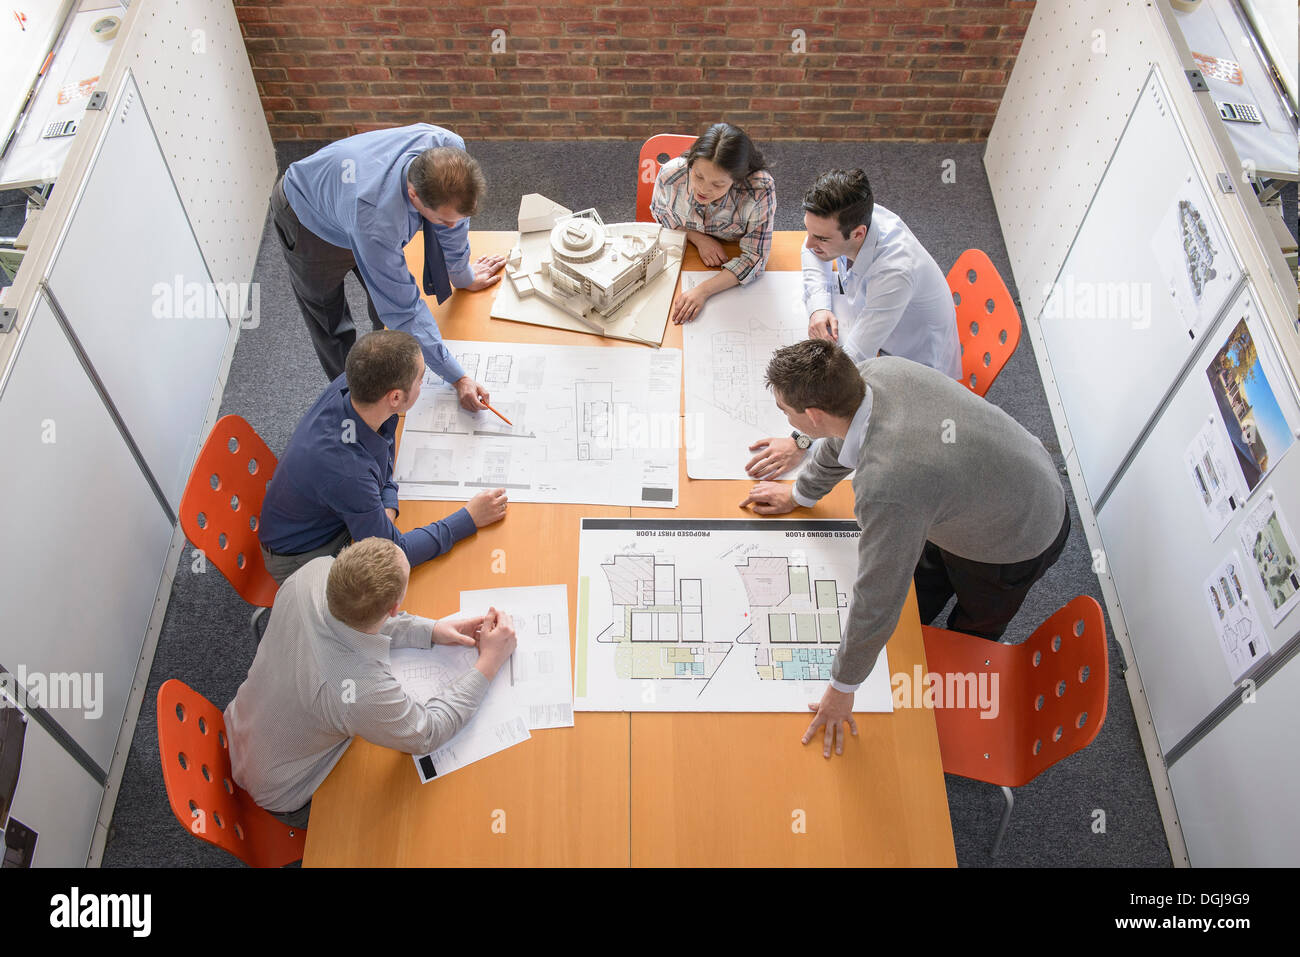 Team of architects discussing plans in meeting room - Stock Image